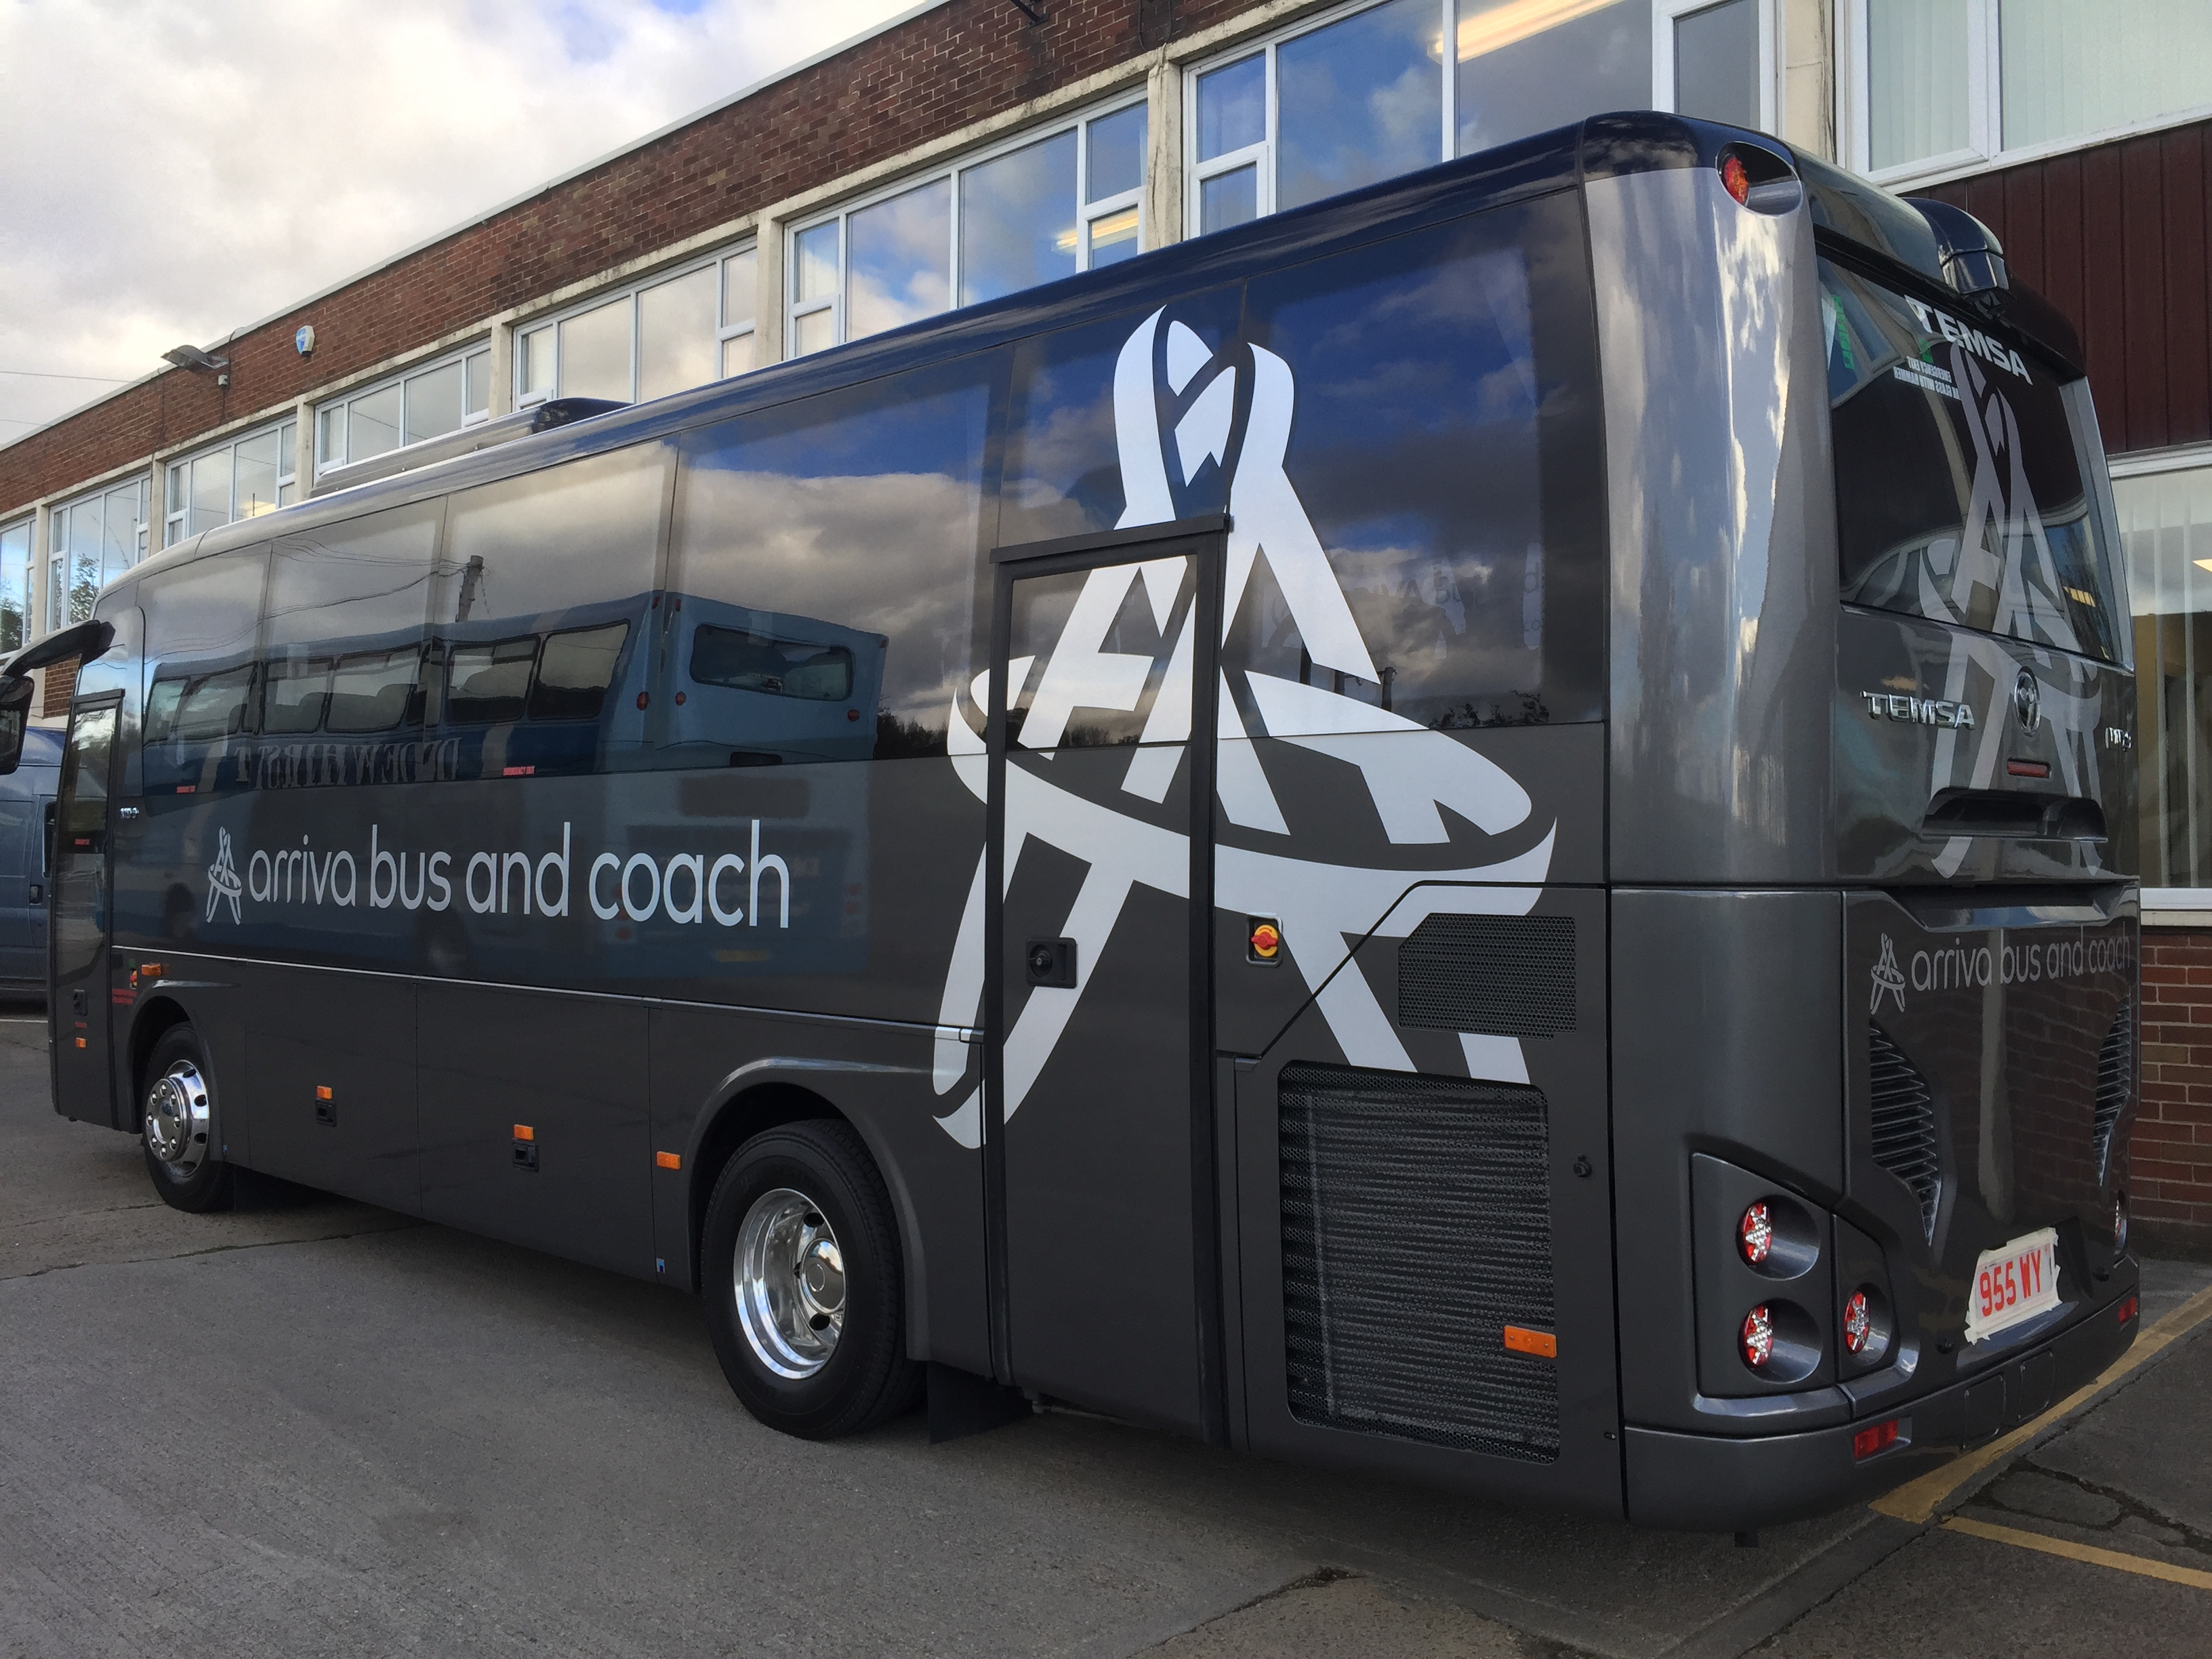 Arriva bus and coach brushed silver coach show graphics